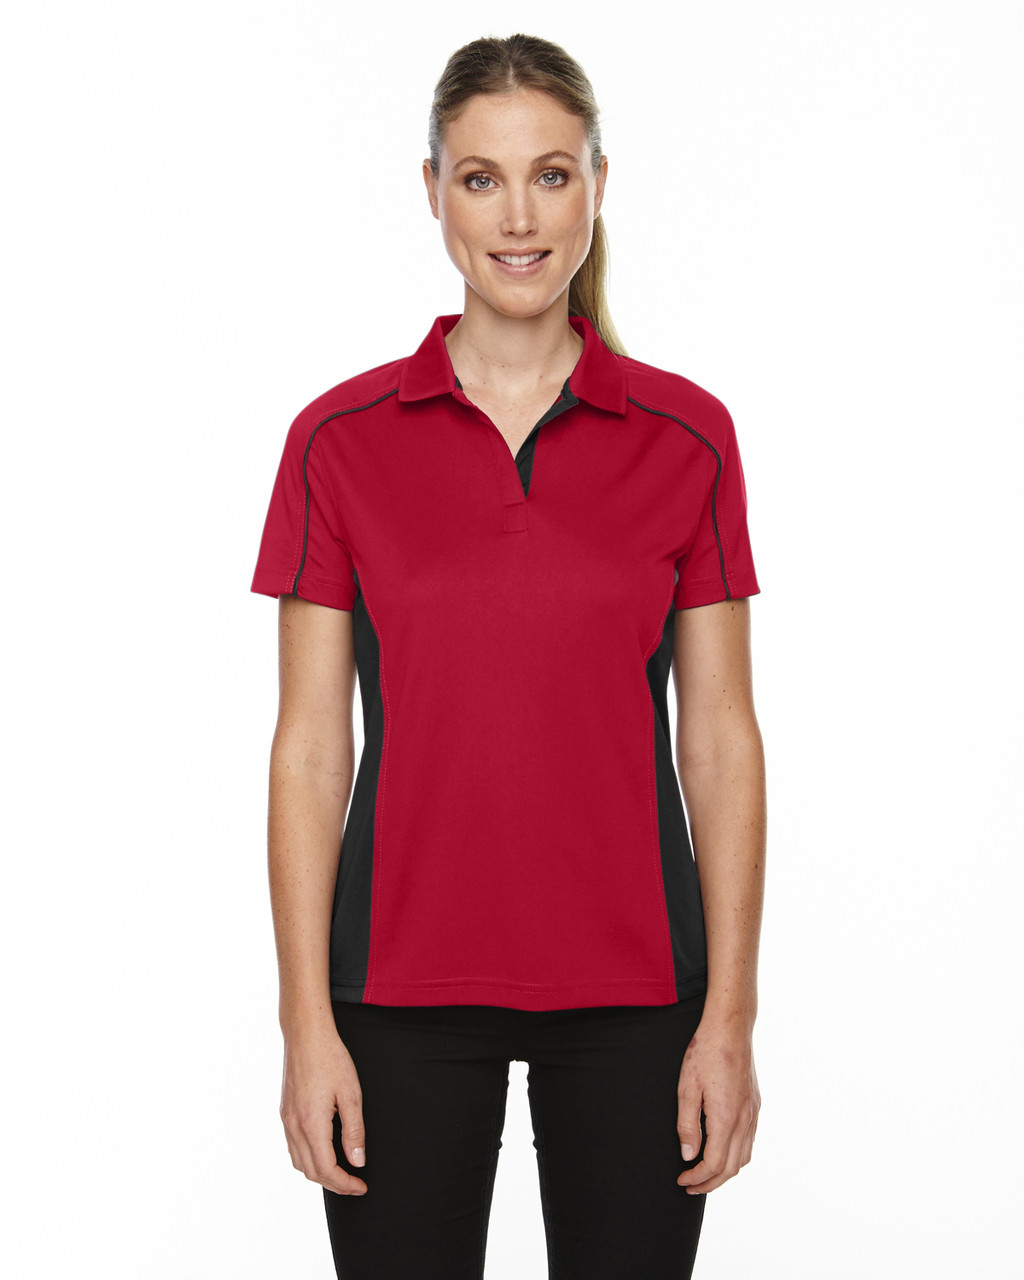 Classic Red - 75113 Ash City - Extreme Eperformance Ladies' Fuse Plus Colourblock Polo Shirt | Blankclothing.ca